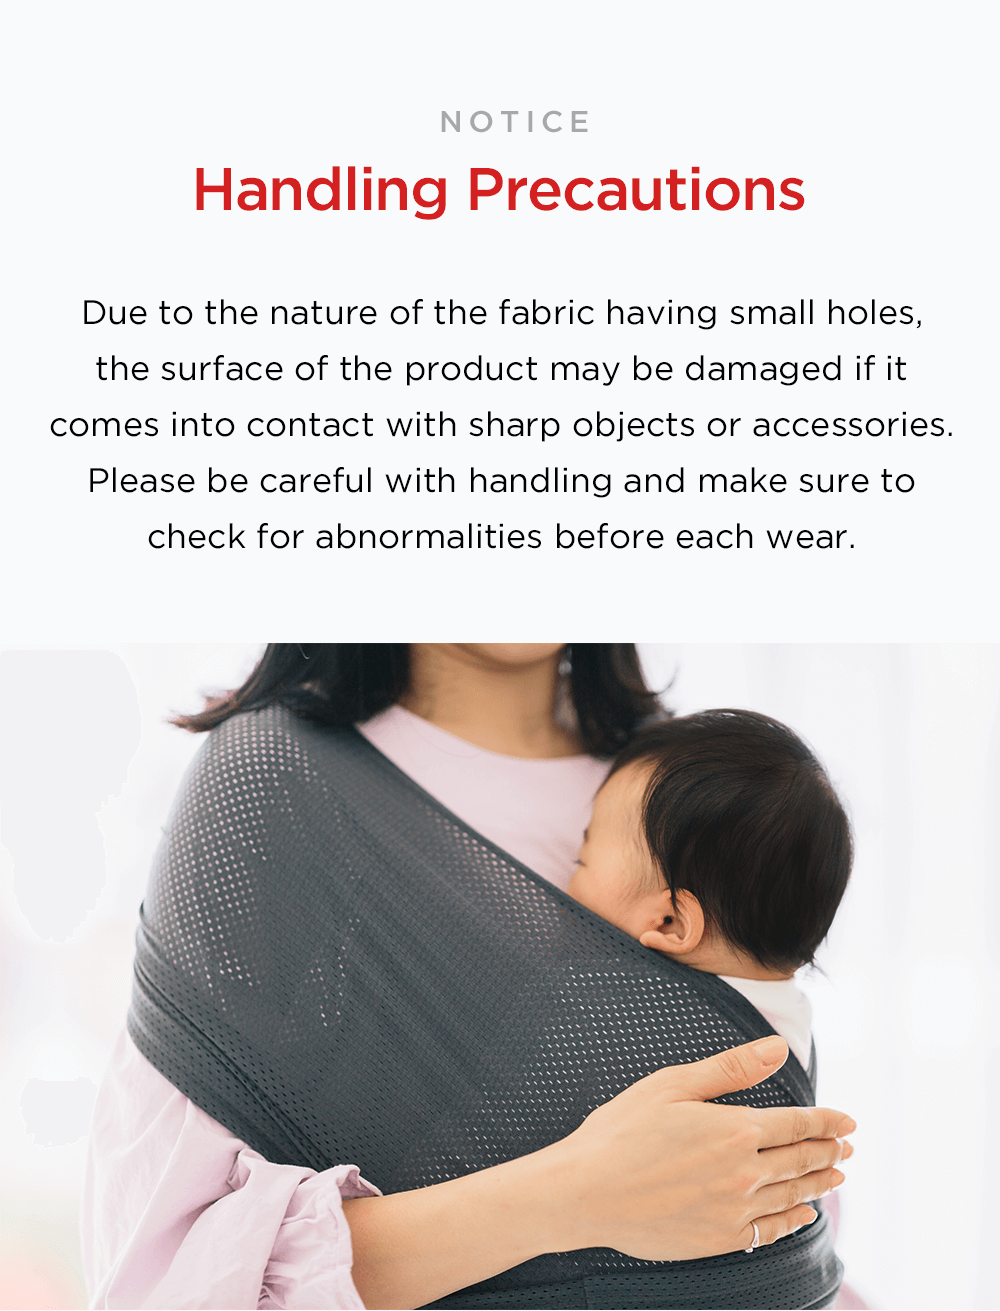 Konny Baby Carrier SUMMER The perfect solution to survive hot and humid weather Cool Lightweight Stylish UV Cut Antibacterial Fabric Moisture Wicking Cooling Fabric Breathable Fabric Ultra-lightweight Konny exclusively developed Cool Span Air Mesh its proprietary special air mesh fabric for a summer baby wrap sling newborn infant toddler